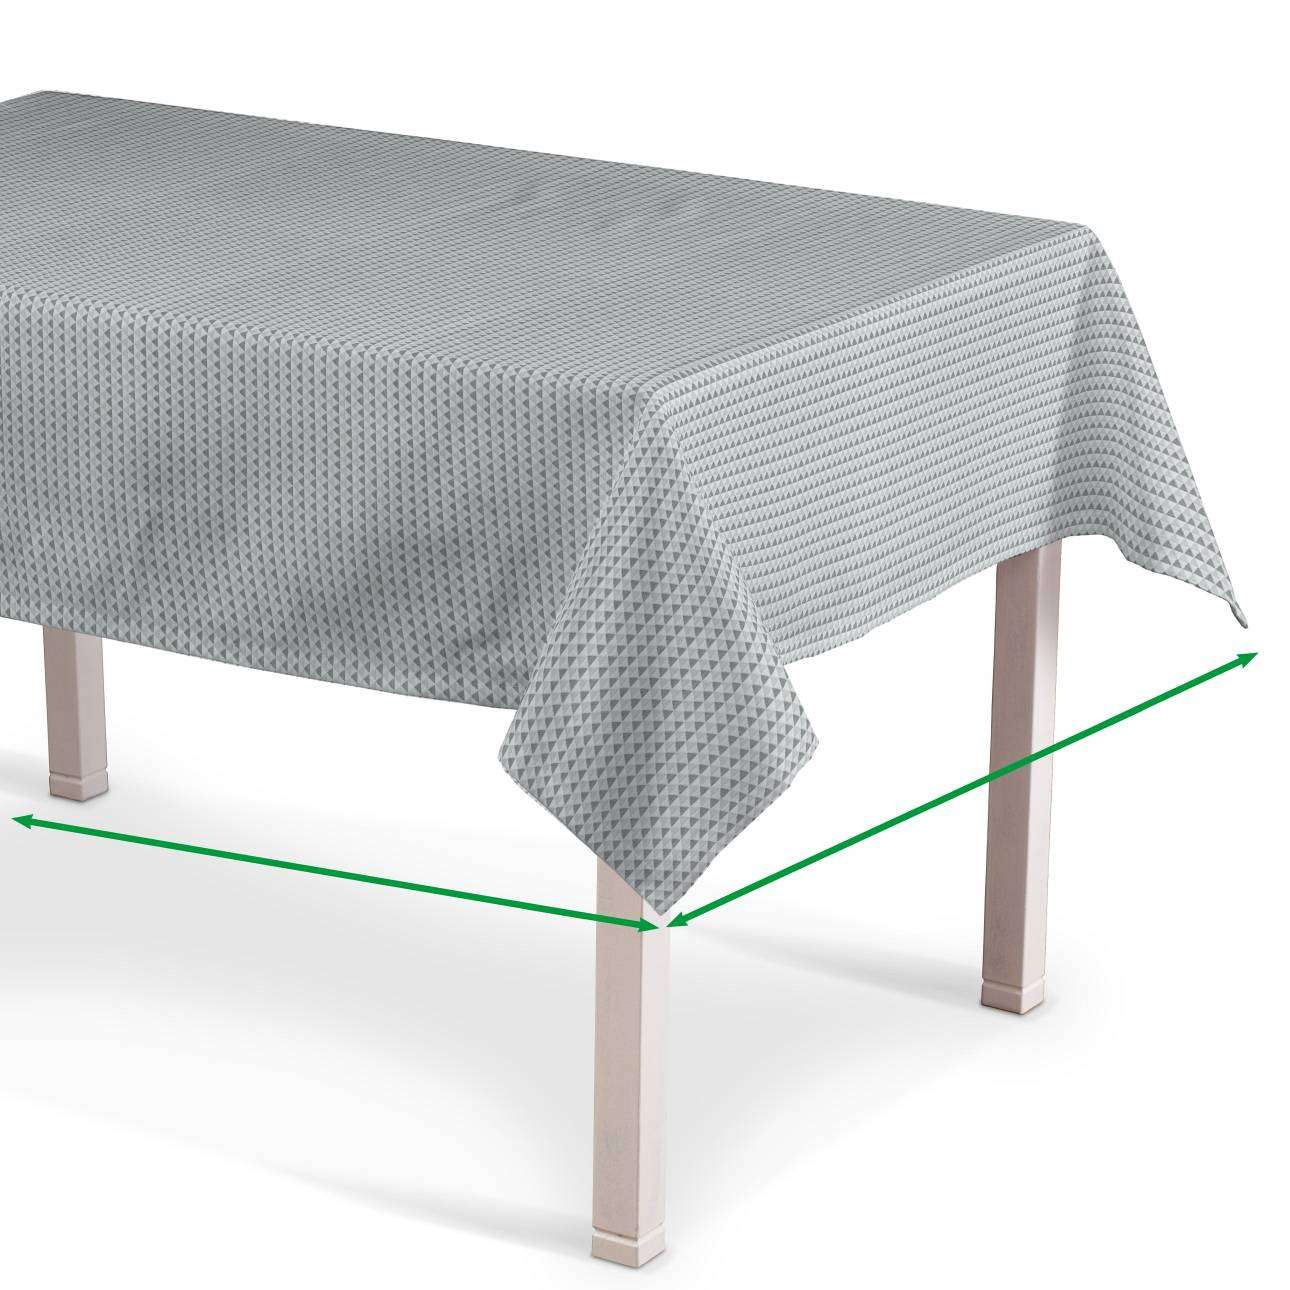 Rectangular tablecloth in collection Rustica, fabric: 140-31